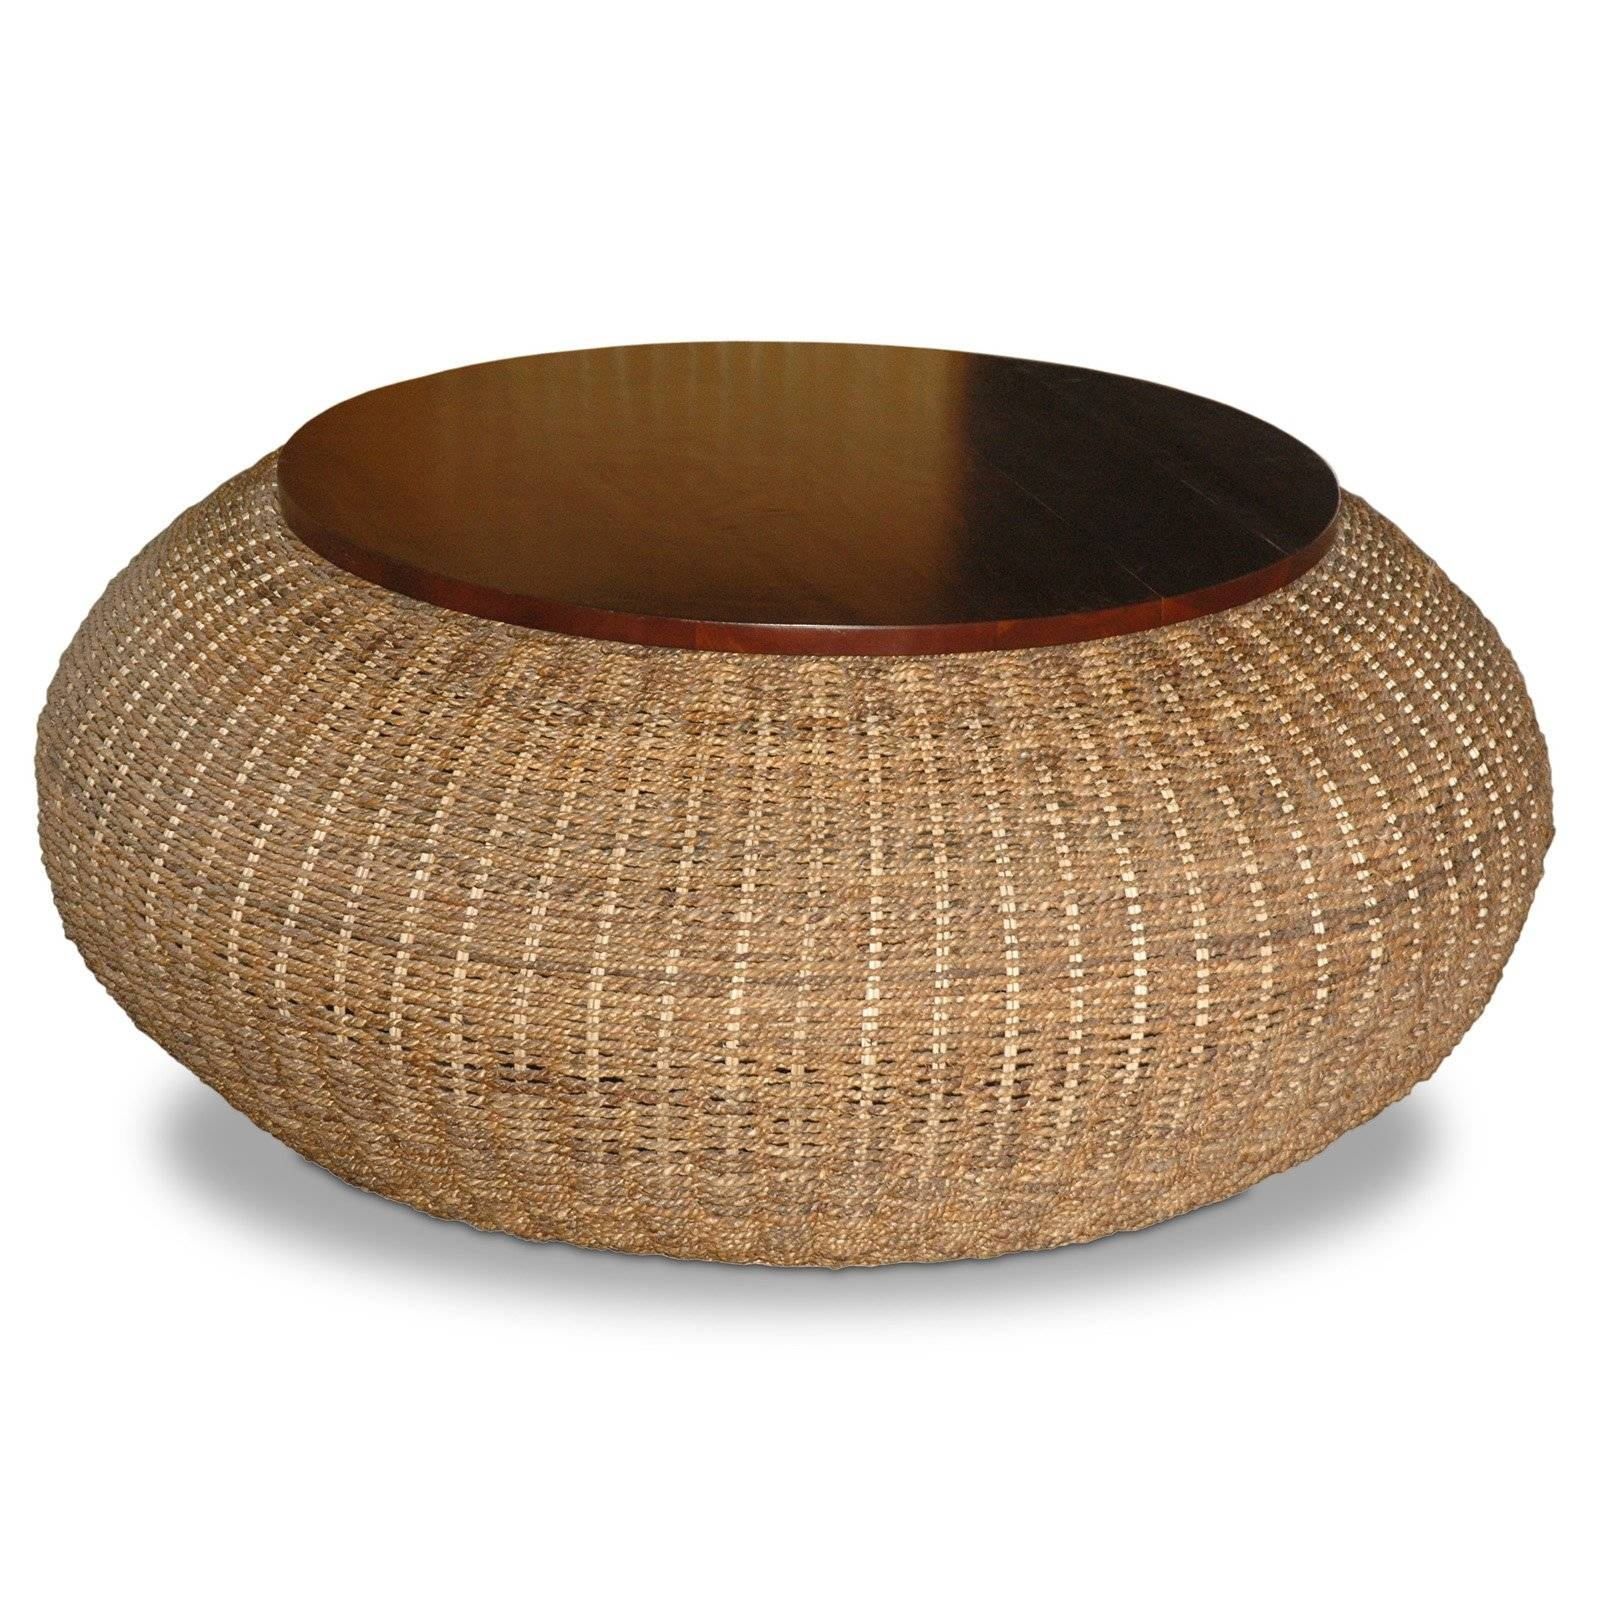 Brown Rattan Round Coffee Table With Storage In An Antique Design throughout Circular Coffee Tables With Storage (Image 3 of 30)